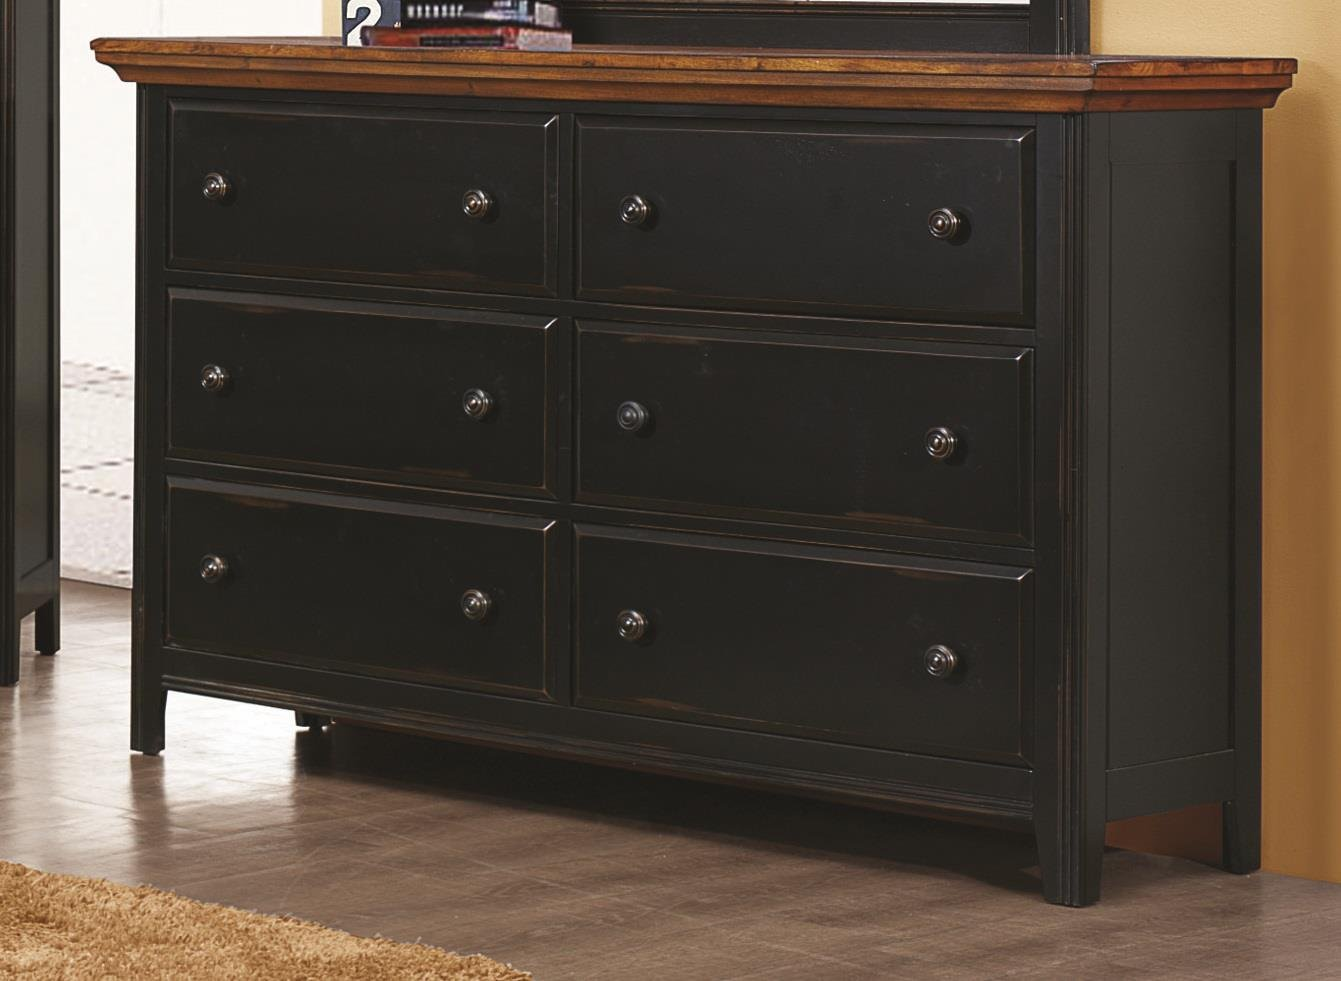 Amazon.com: Coaster Home Furnishings Rustic Dresser, Medium Oak and ...